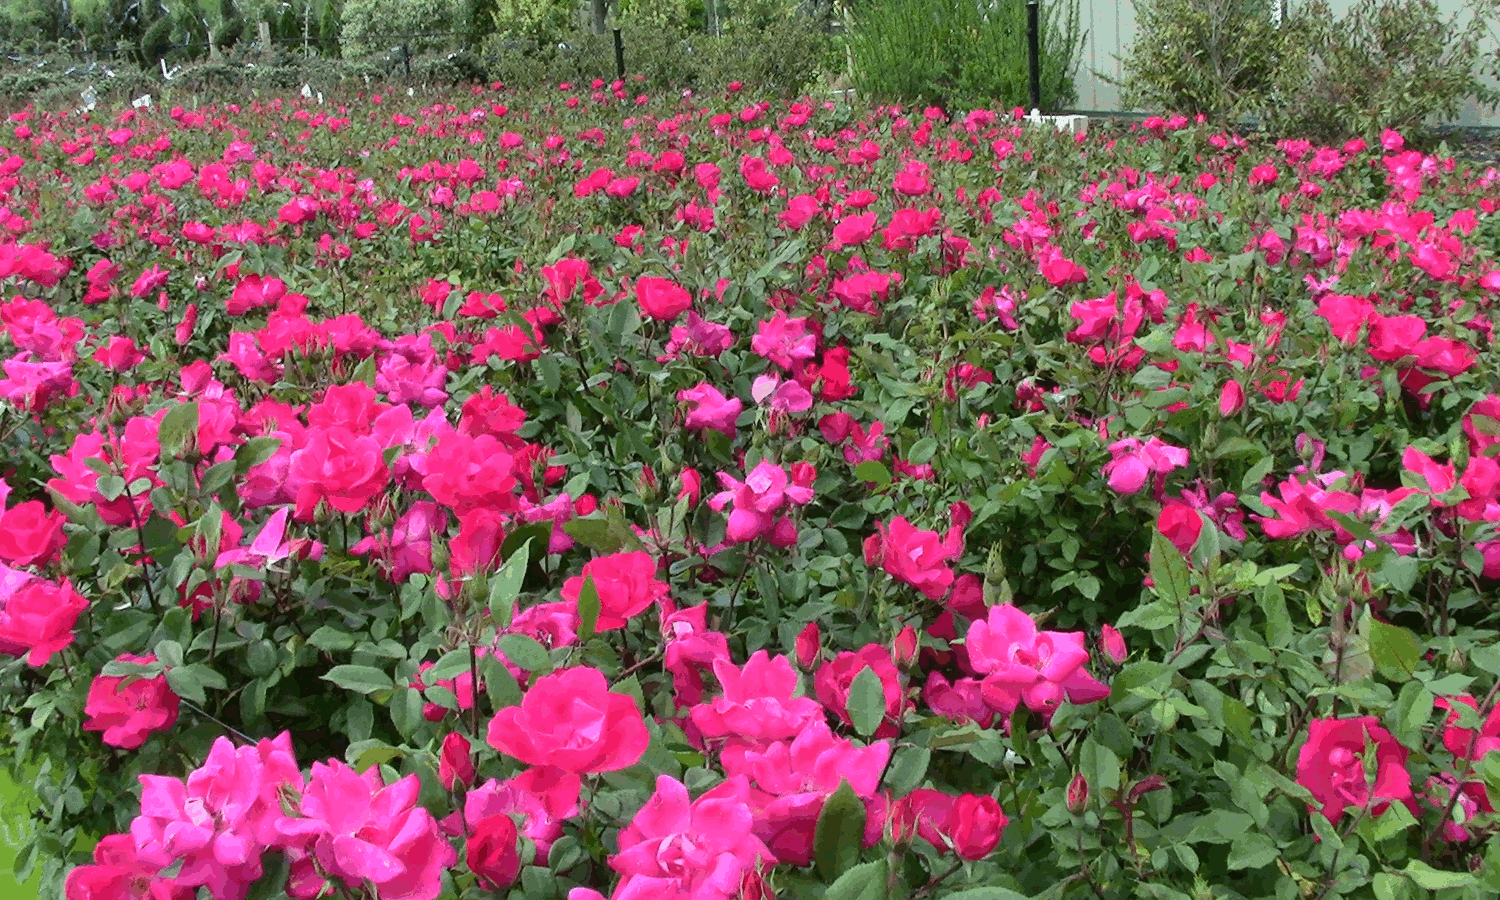 Full Bloom at Country Springs Wholesale Nursery